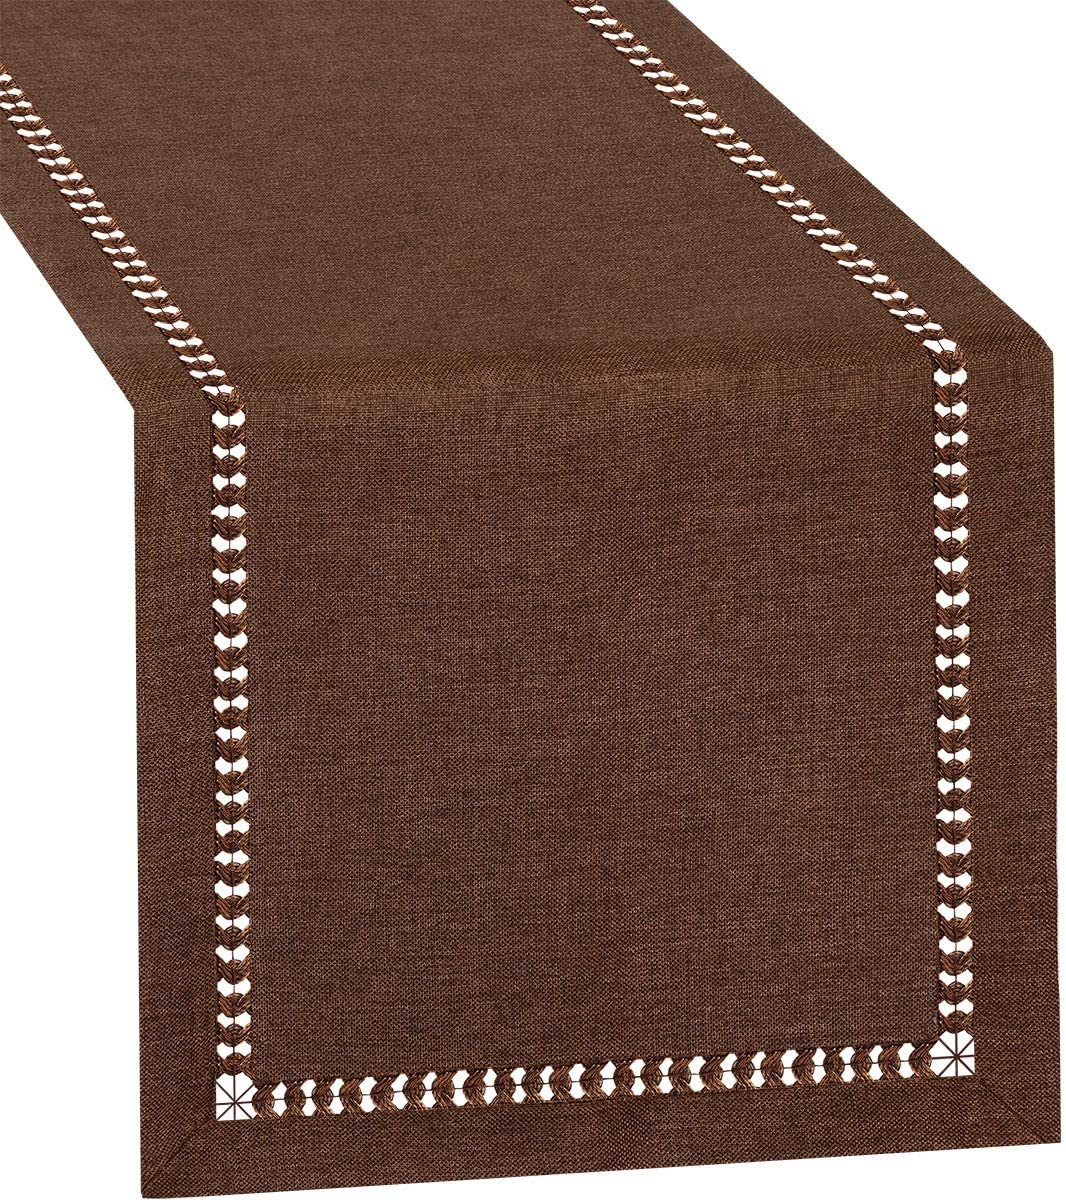 Grelucgo Small Short Hemstitch Chocolate Brown Table Runner, Dresser Scarf, Solid Color (14 x 48 inch)